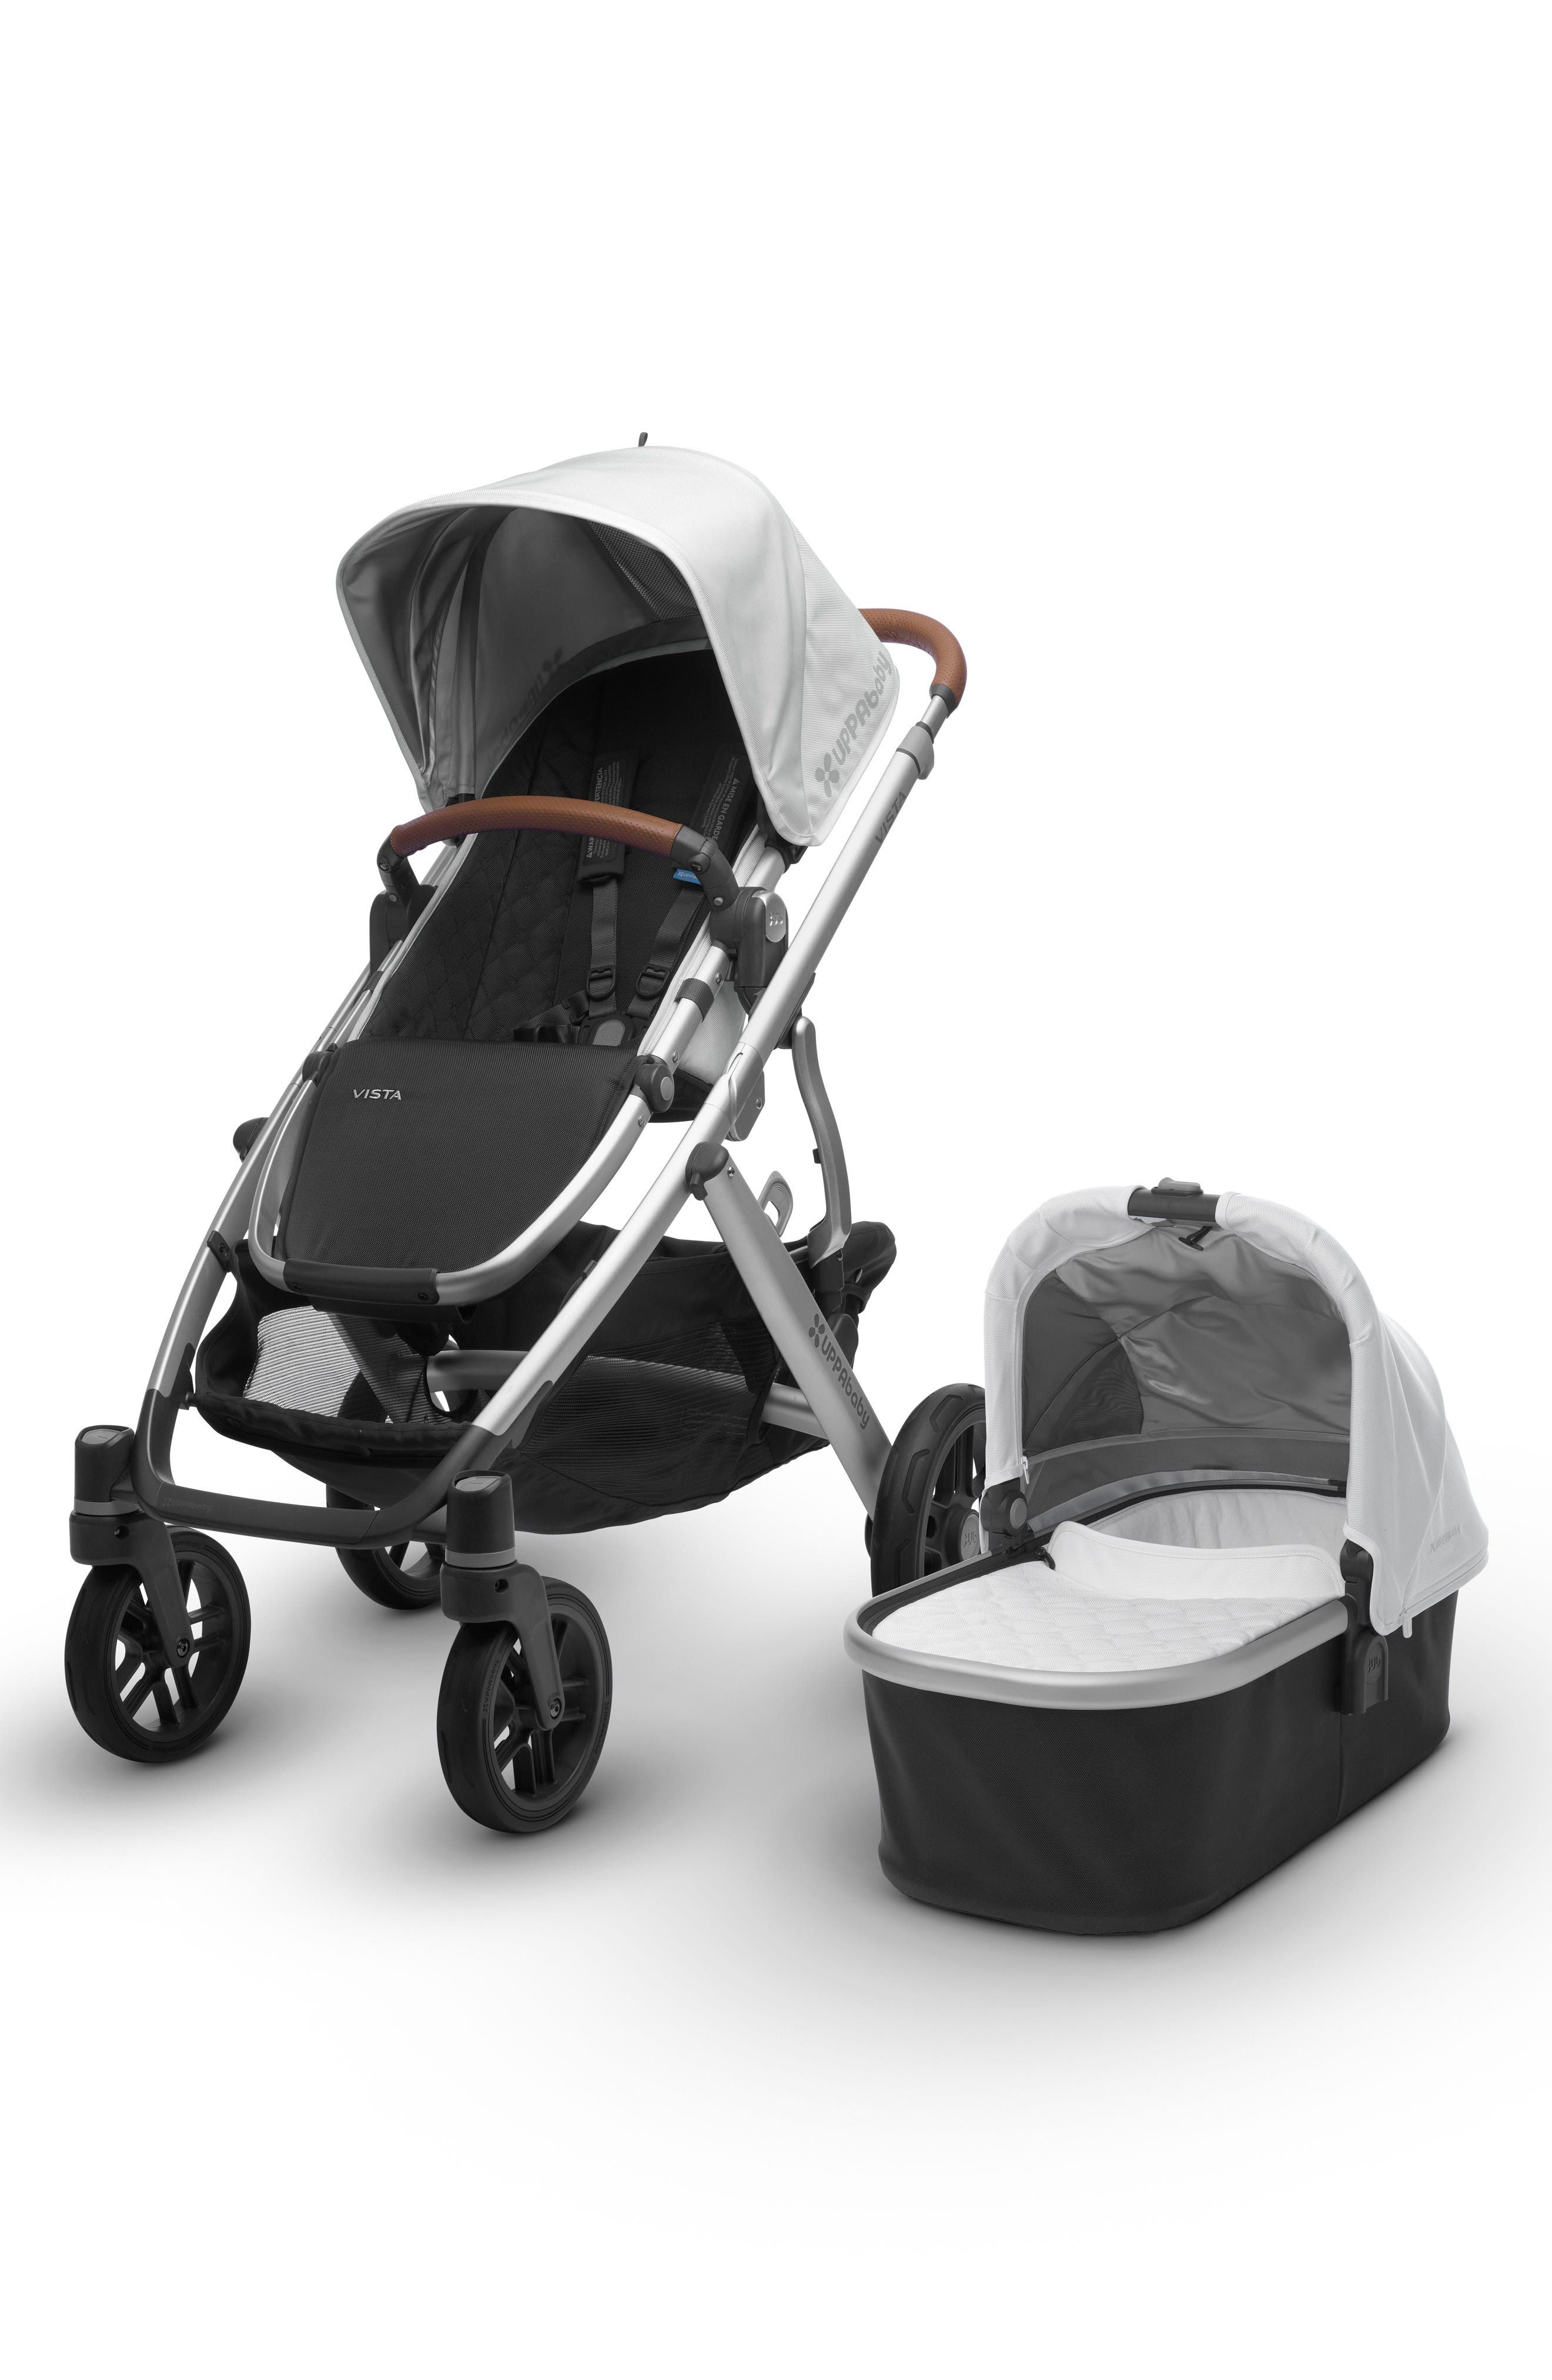 Main Image - UPPAbaby 2017 VISTA Aluminum Frame Convertible Stroller with Bassinet & Toddler Seat